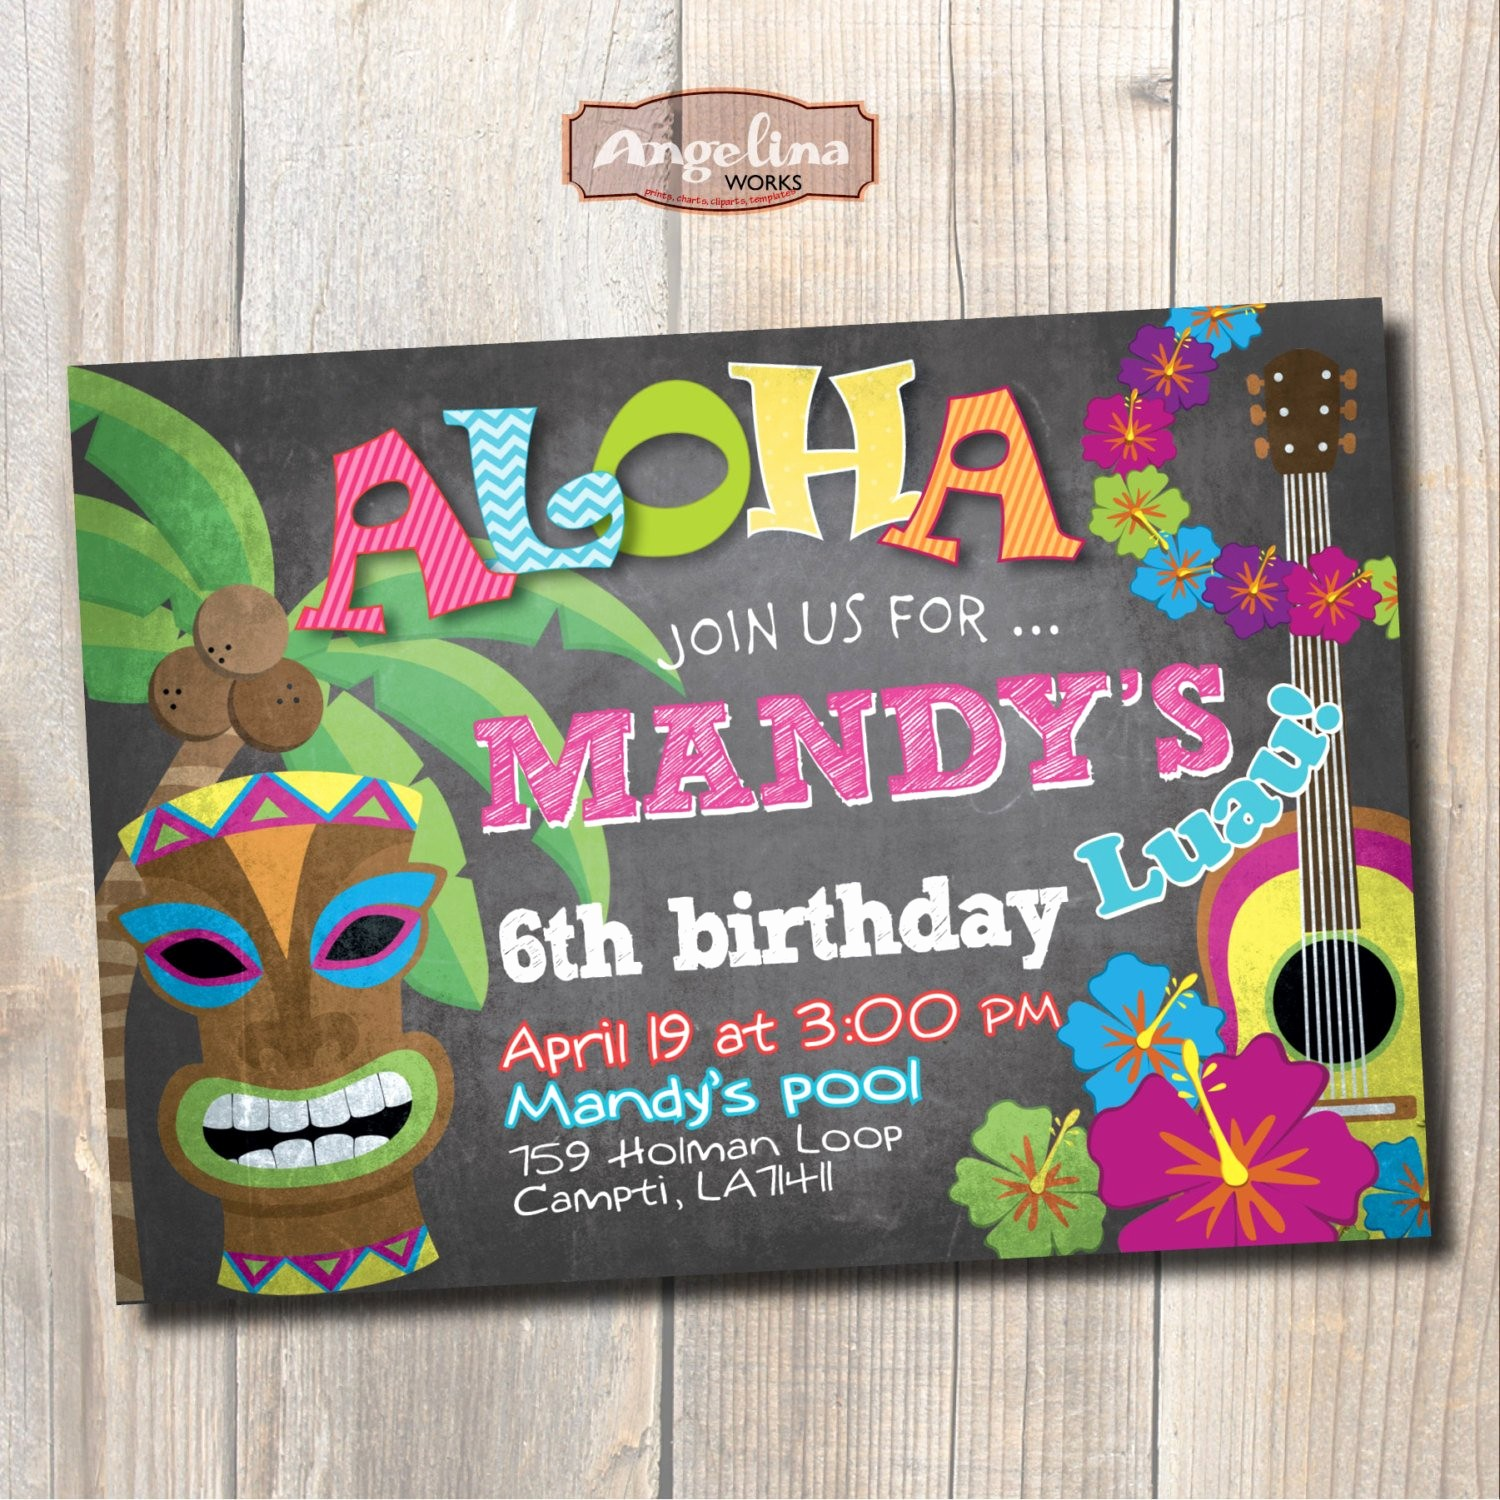 Hawaiian theme Party Invitations Printable Beautiful Luau Birthday Invitation Hawaiian Party Chalkboard Diy